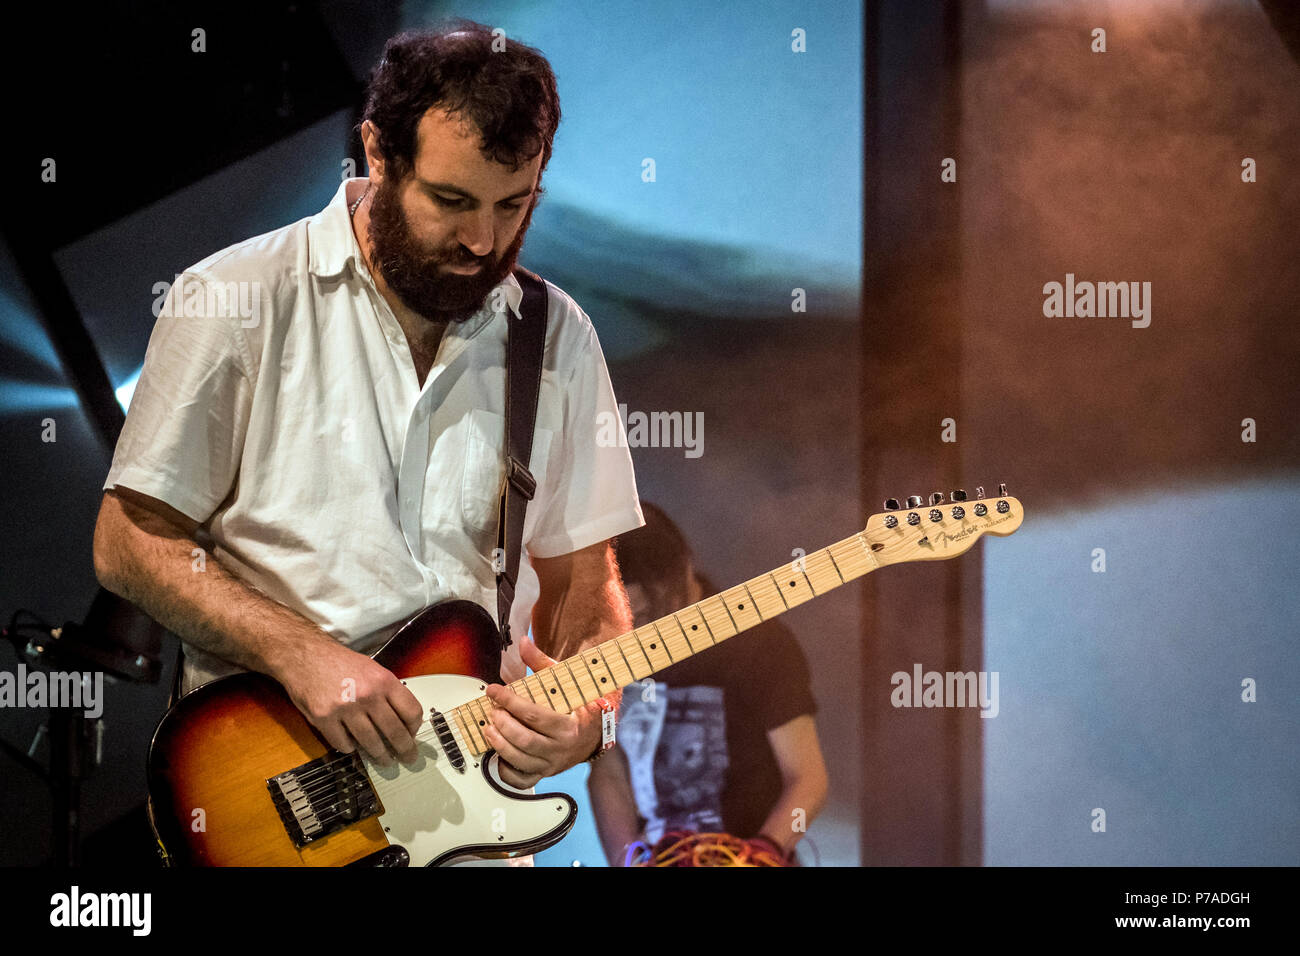 Roskilde, Denmark. 4th July, 2018. The international jazz band Paal Nilssen-Love's Japan Free Jazz and Noise performs a live concert during the Danish music festival Roskilde Festival 2018. Here Brazilian guitarist Kiko Dinucci is seen live on stage. (Photo credit: Gonzales Photo - Kim M. Leland). Credit: Gonzales Photo/Alamy Live News - Stock Image